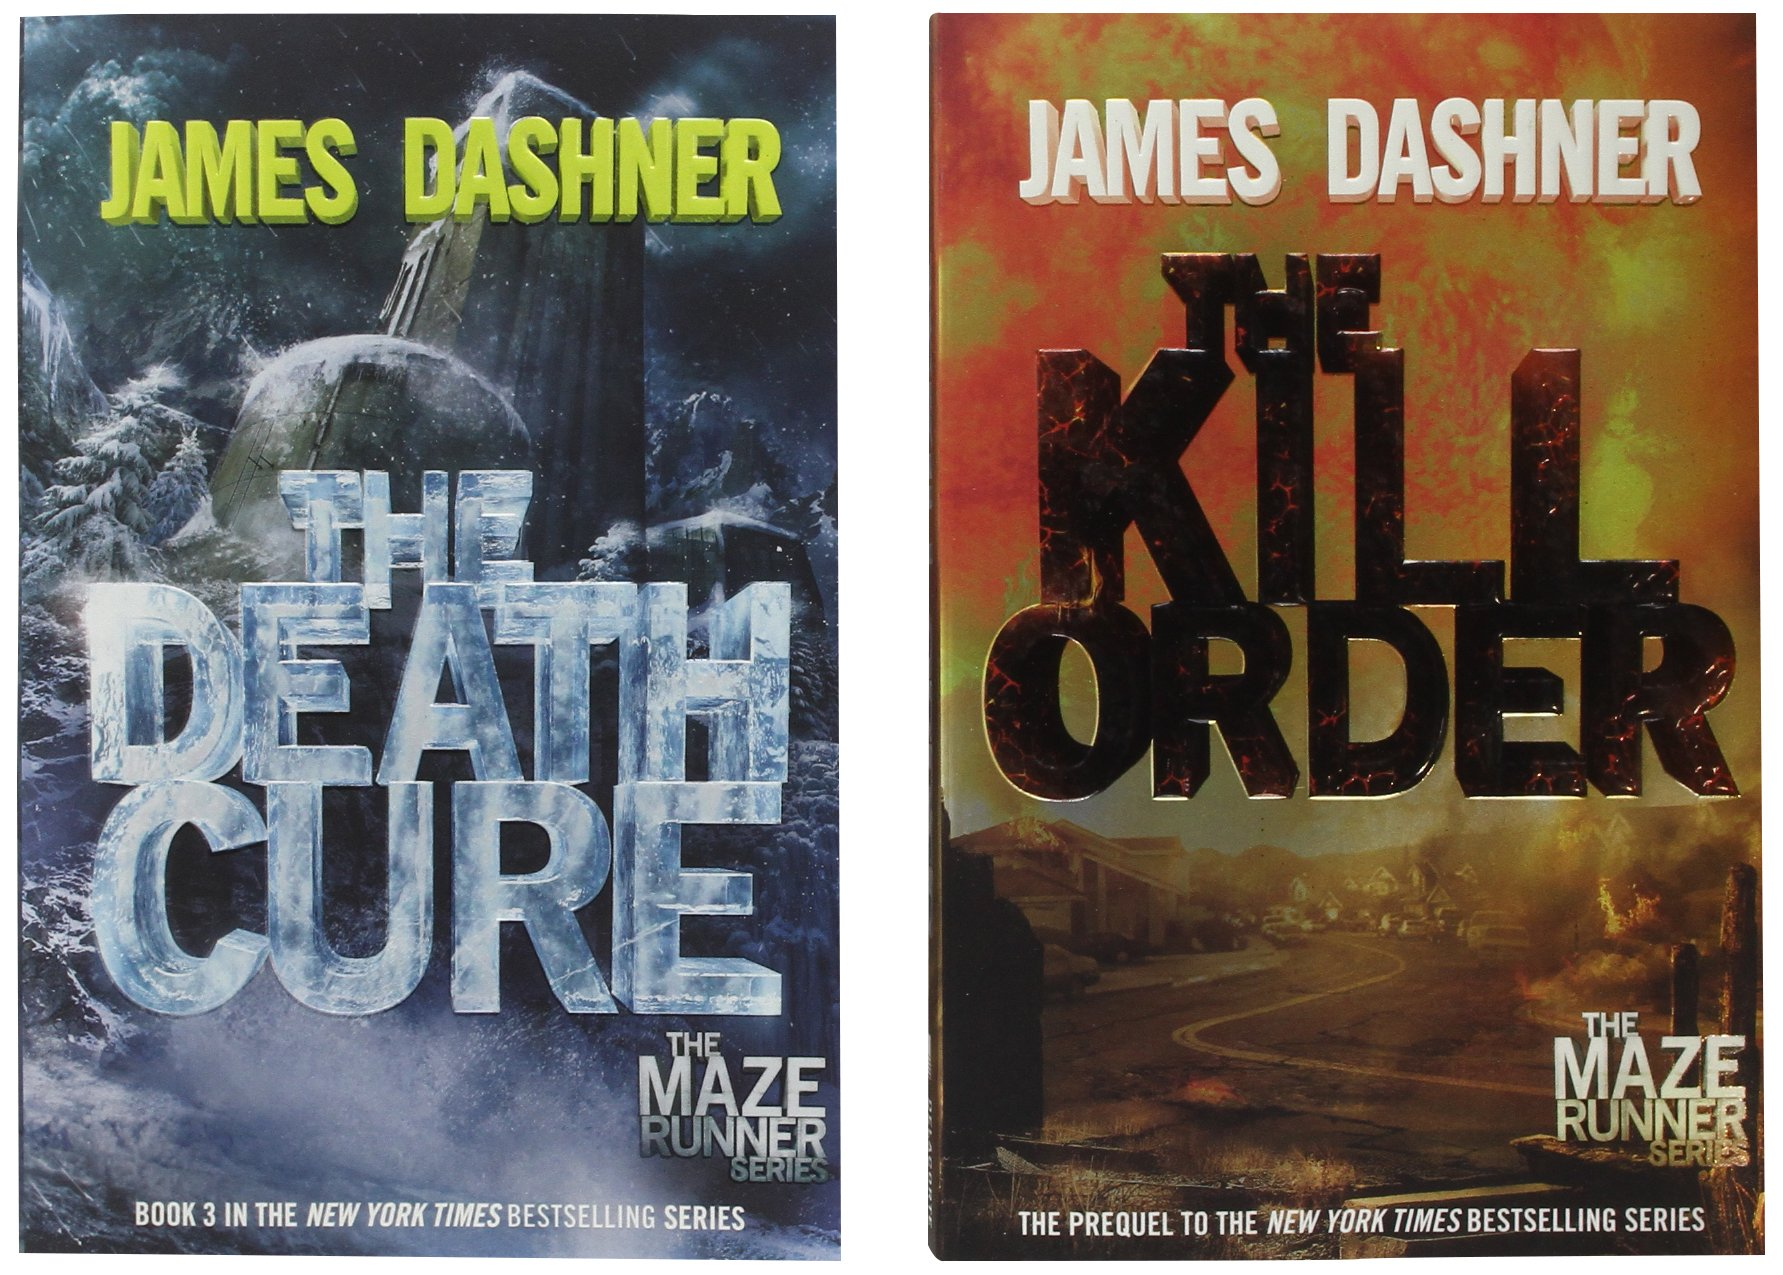 MAZE RUNNER BOOK 4 PDF DOWNLOAD